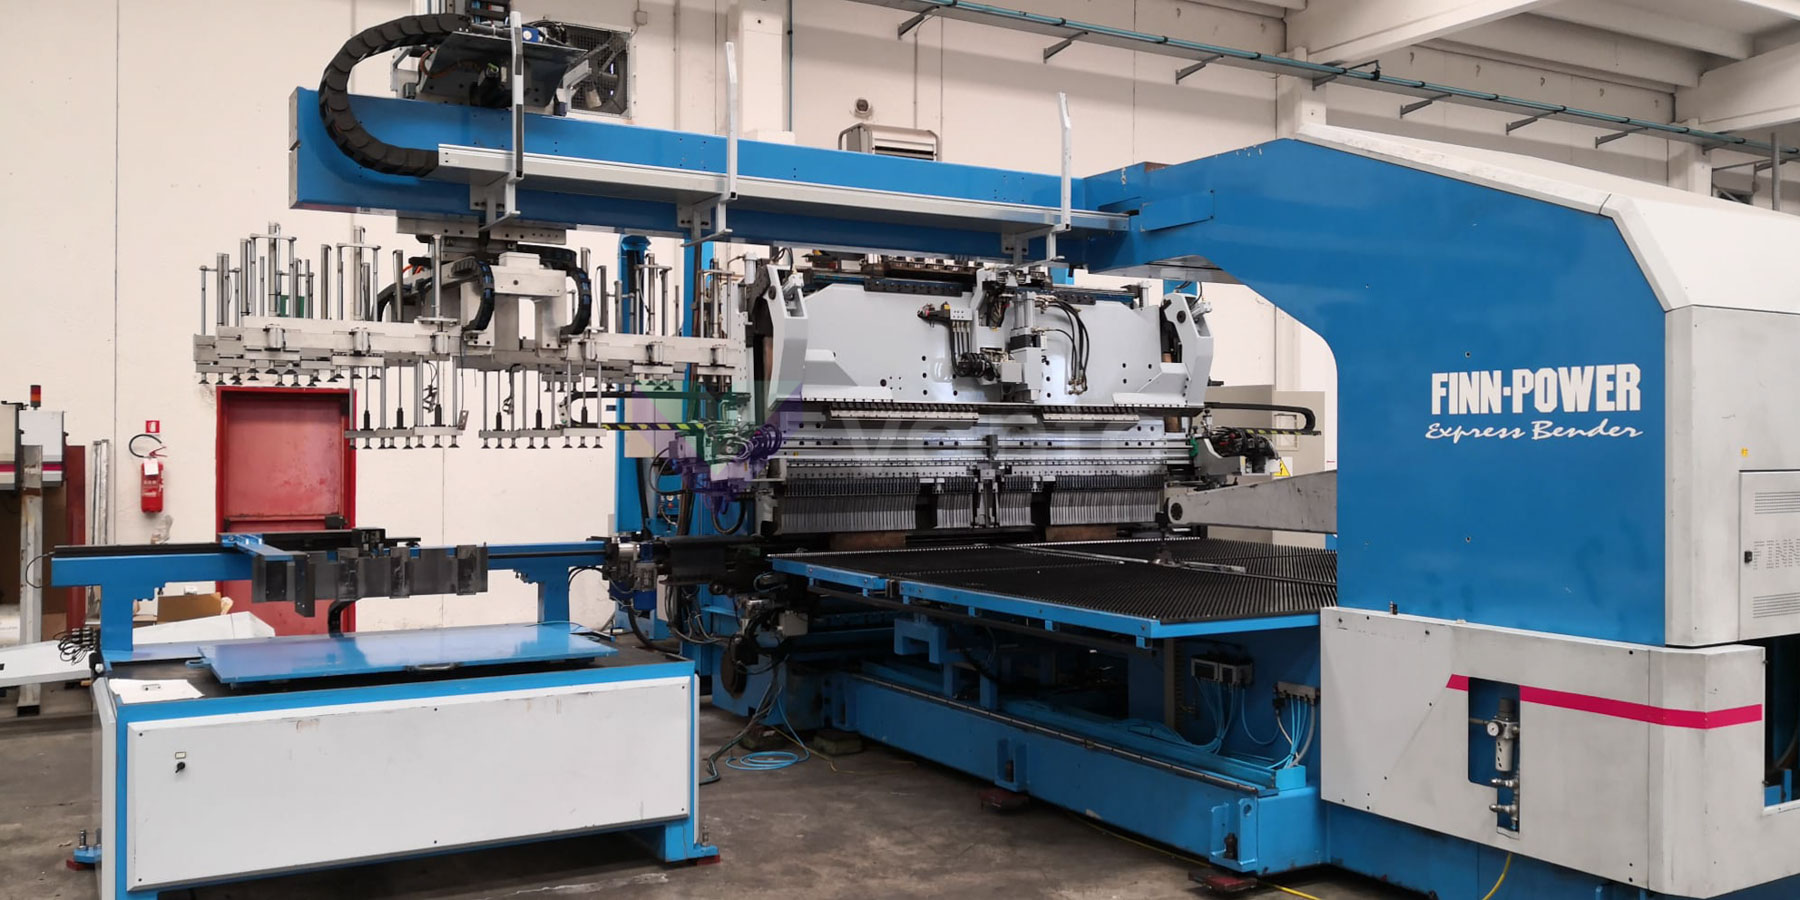 FINN POWER EB5 200 Automatic Panel Bending Machine (2000) id10194